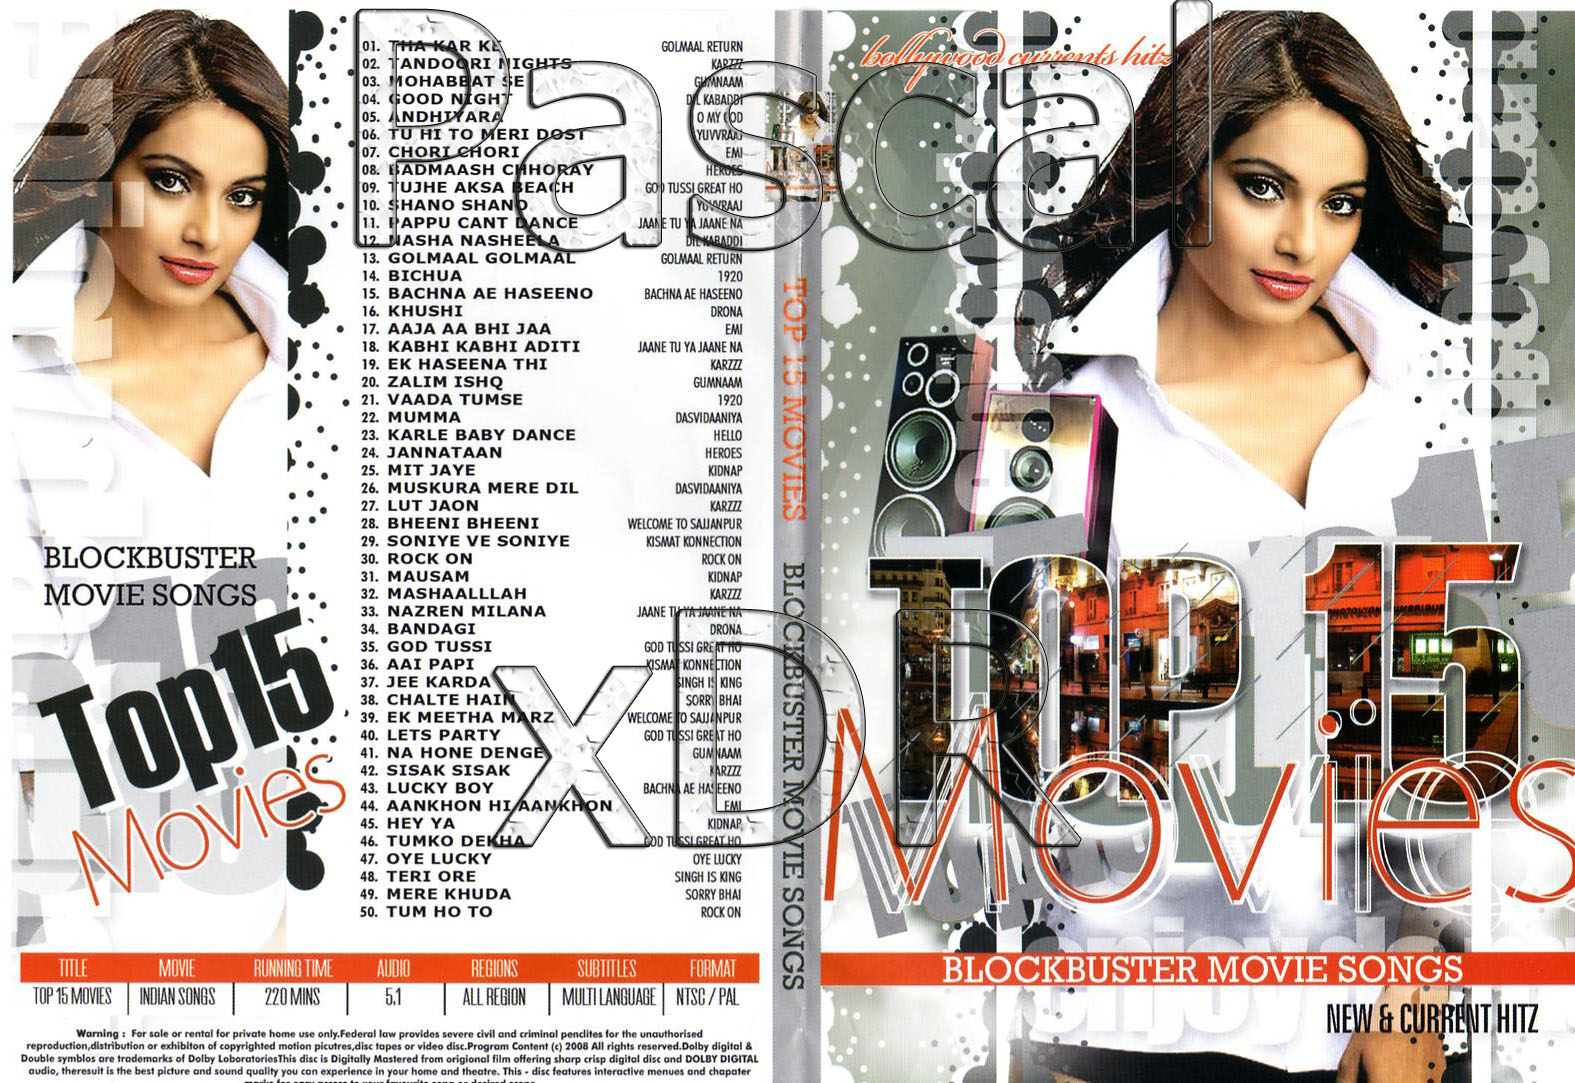 Top 15 Movies Songs Collection (2009)